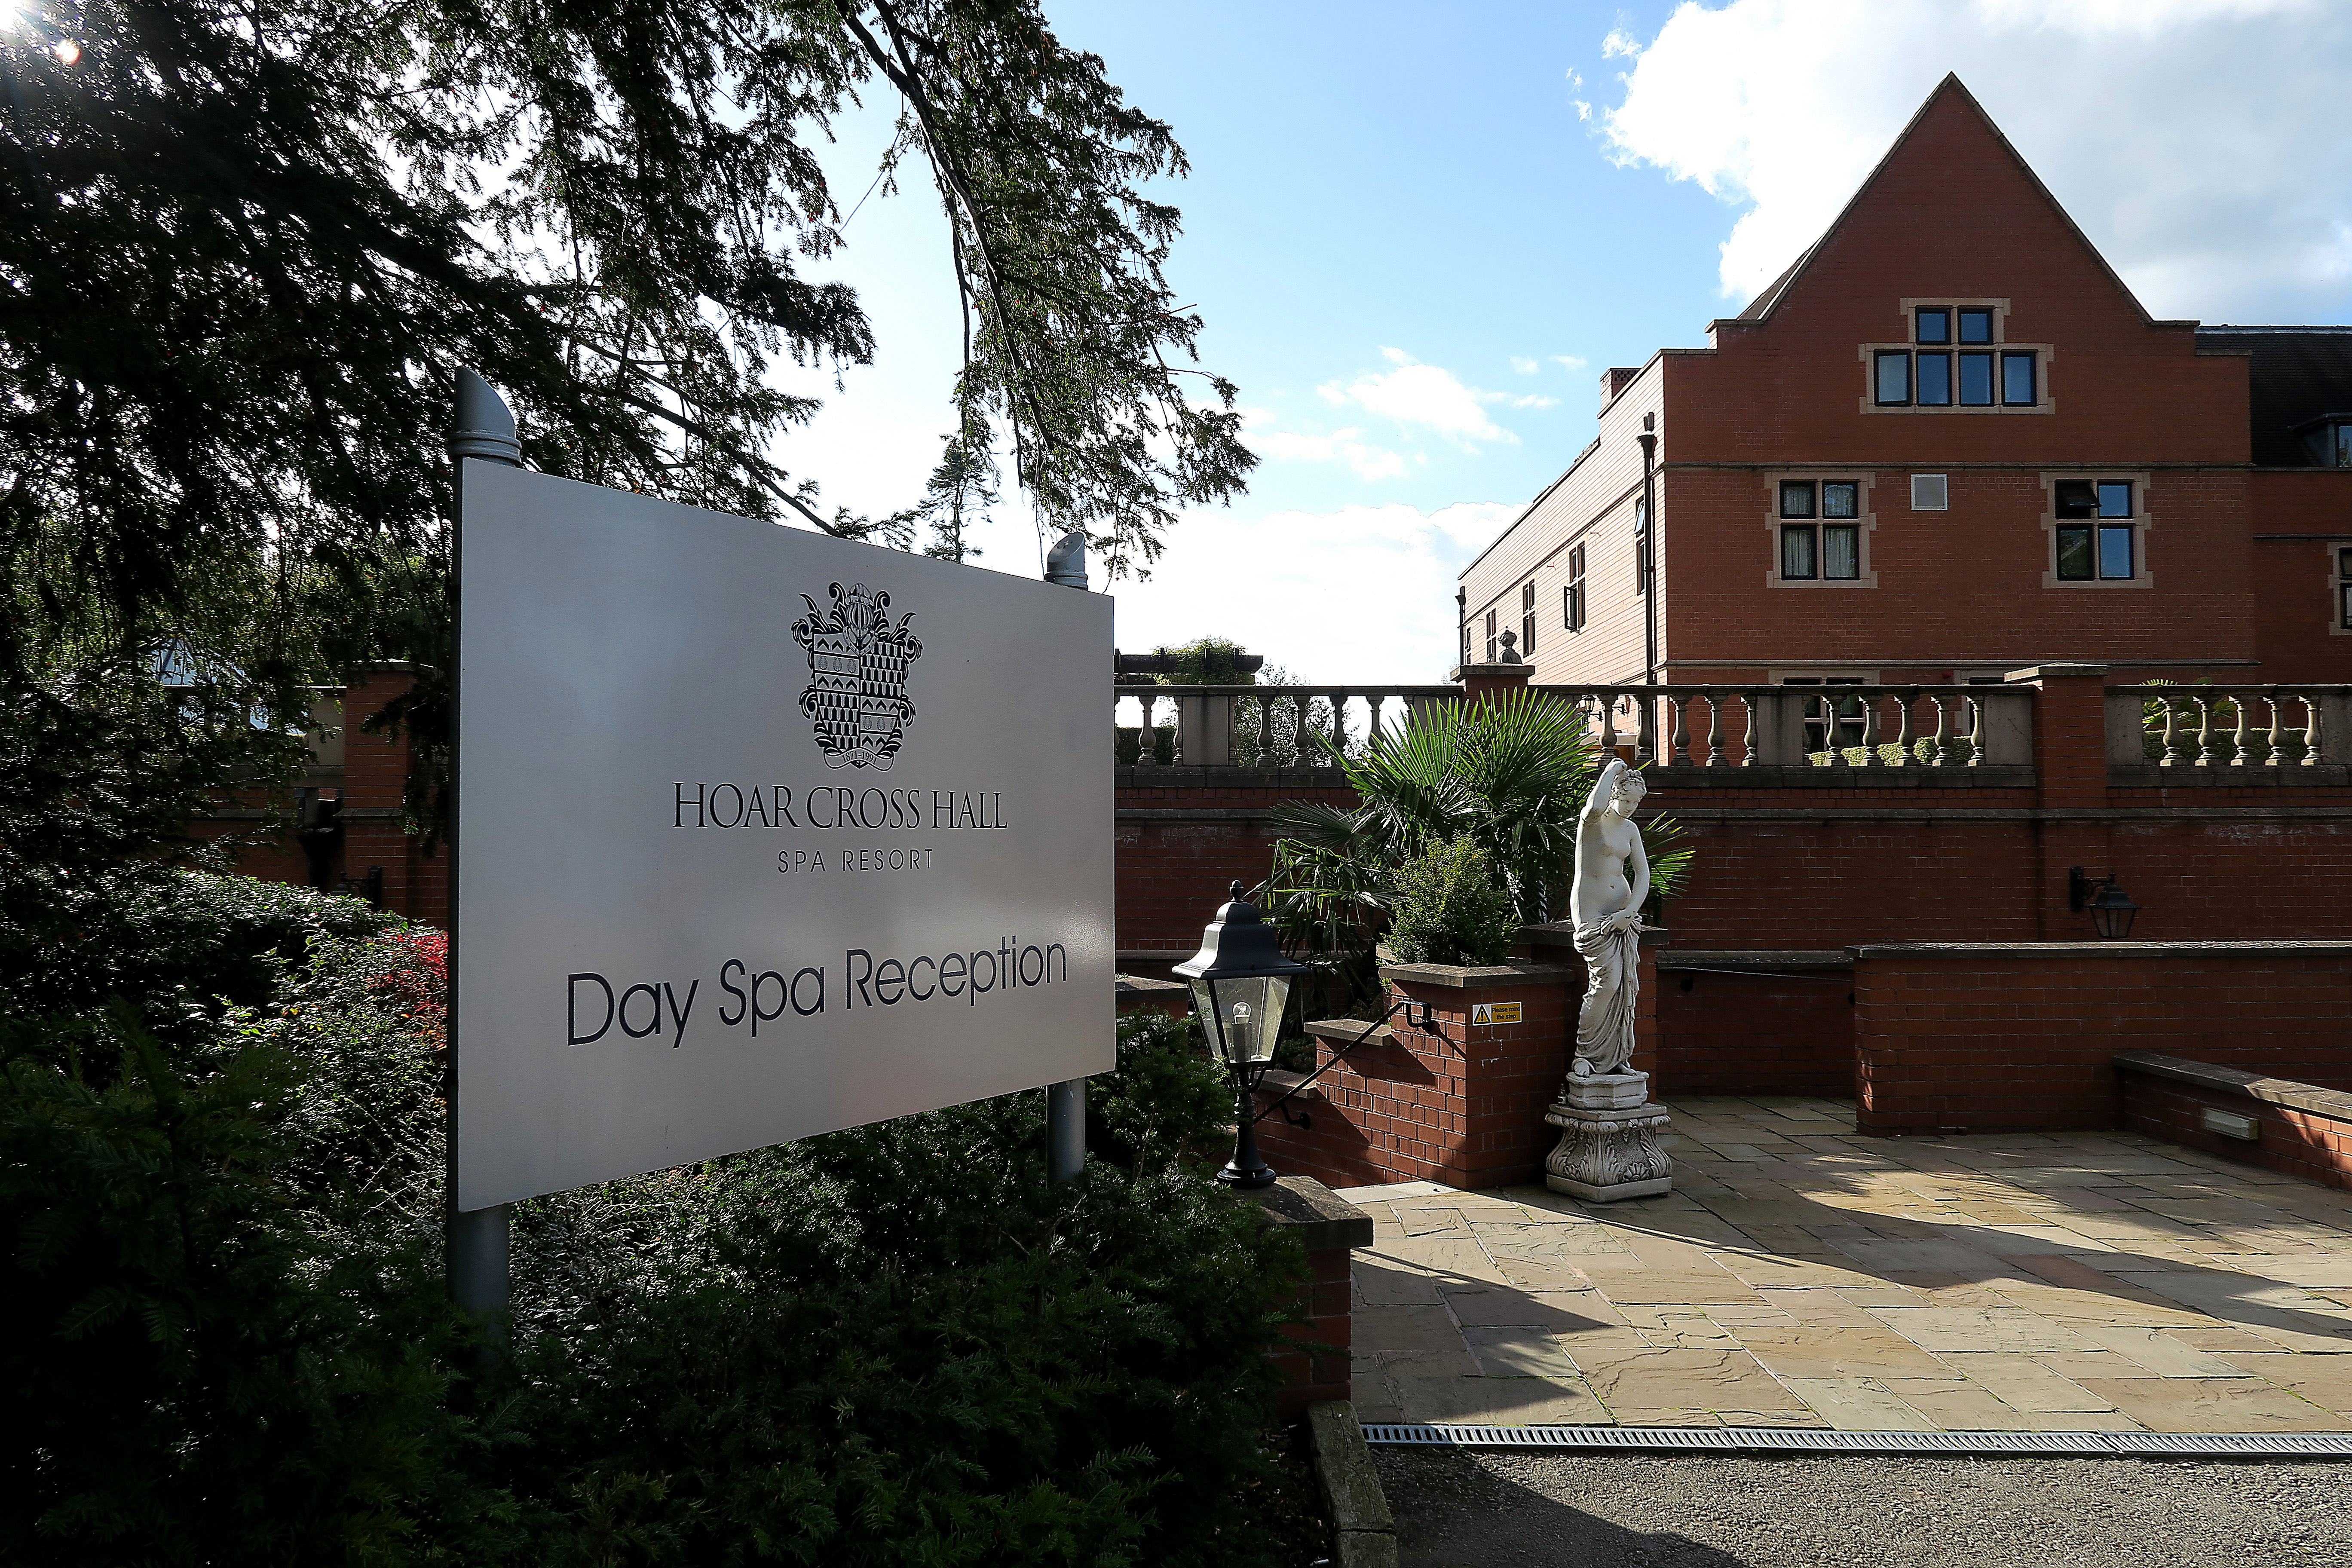 Hoar Cross Hall Spa Day Reviews